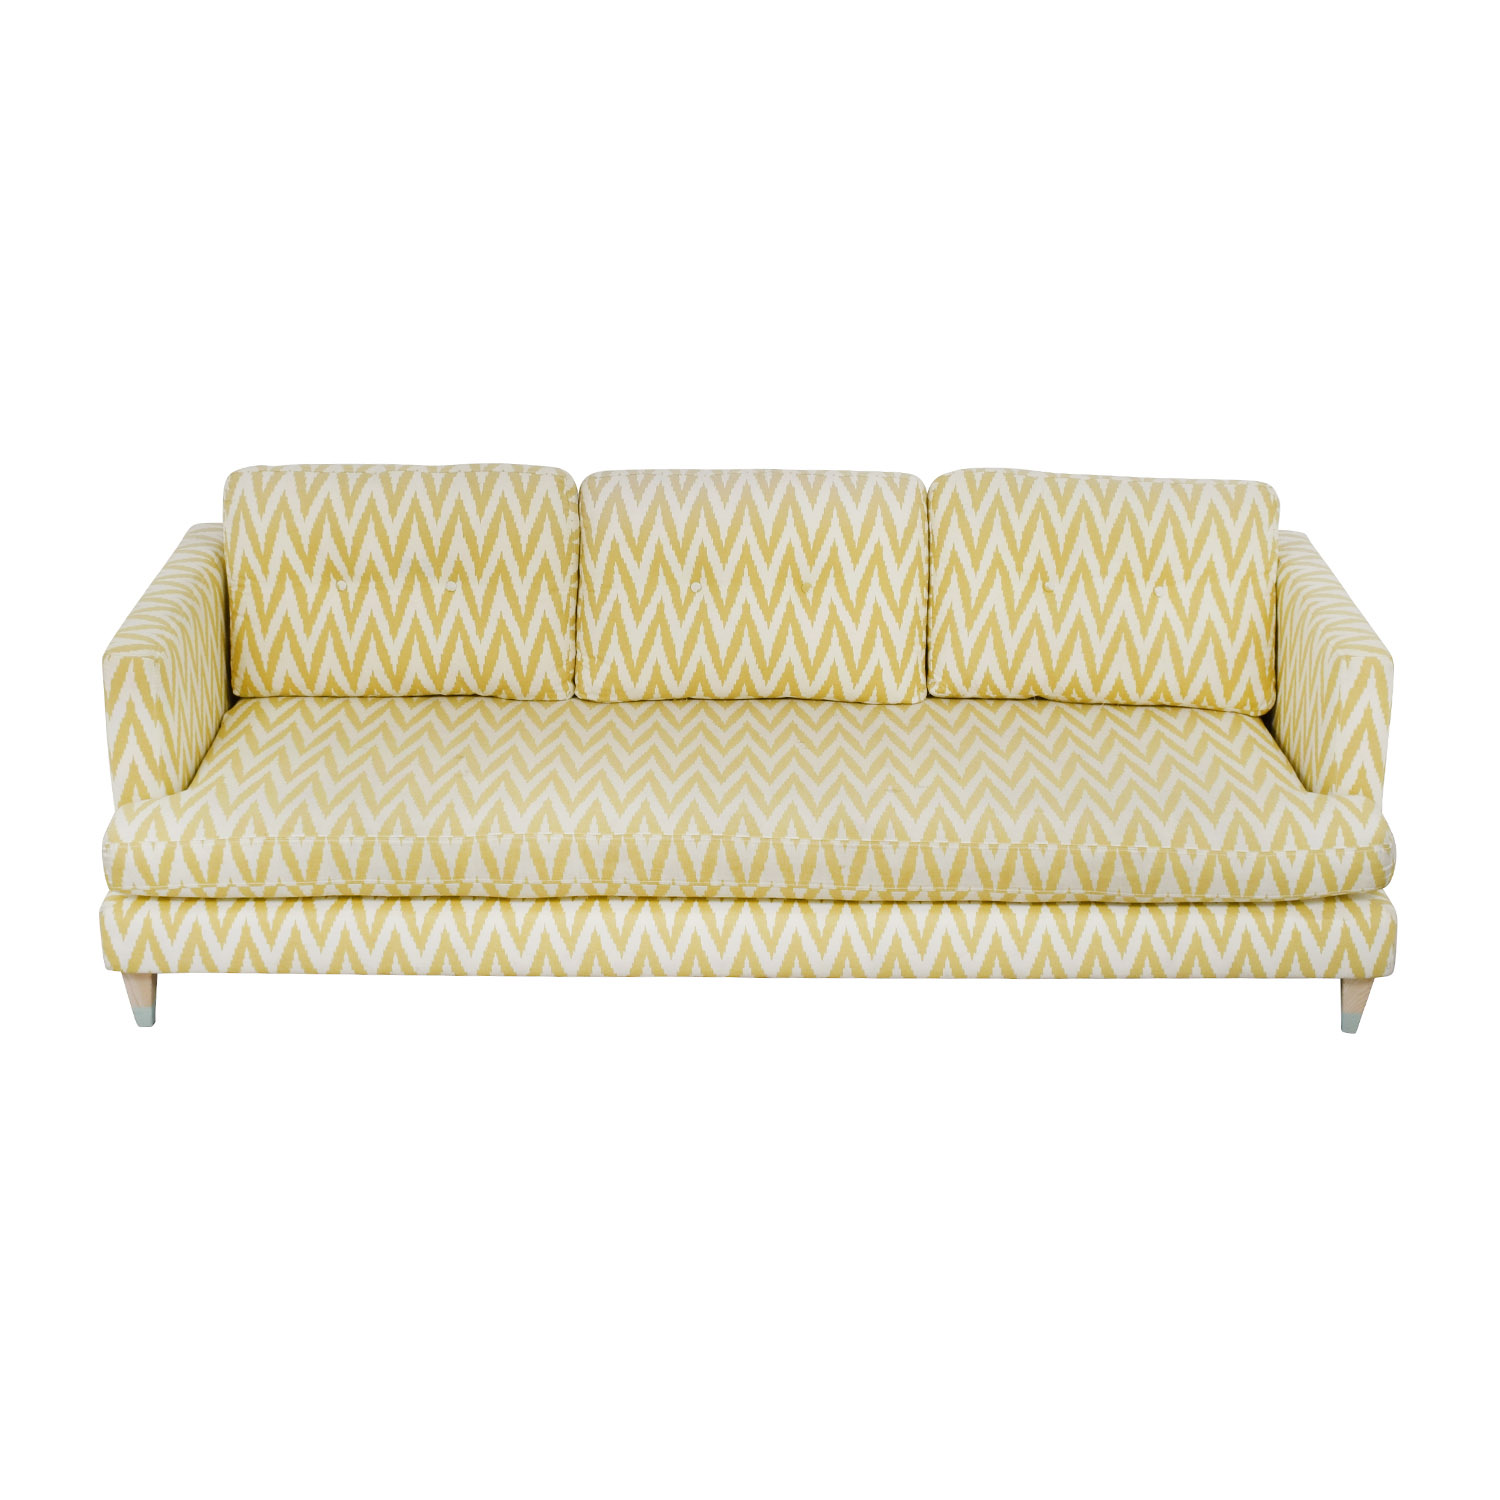 West Elm West Elm Yellow and White Single Cushion Sofa Yellow